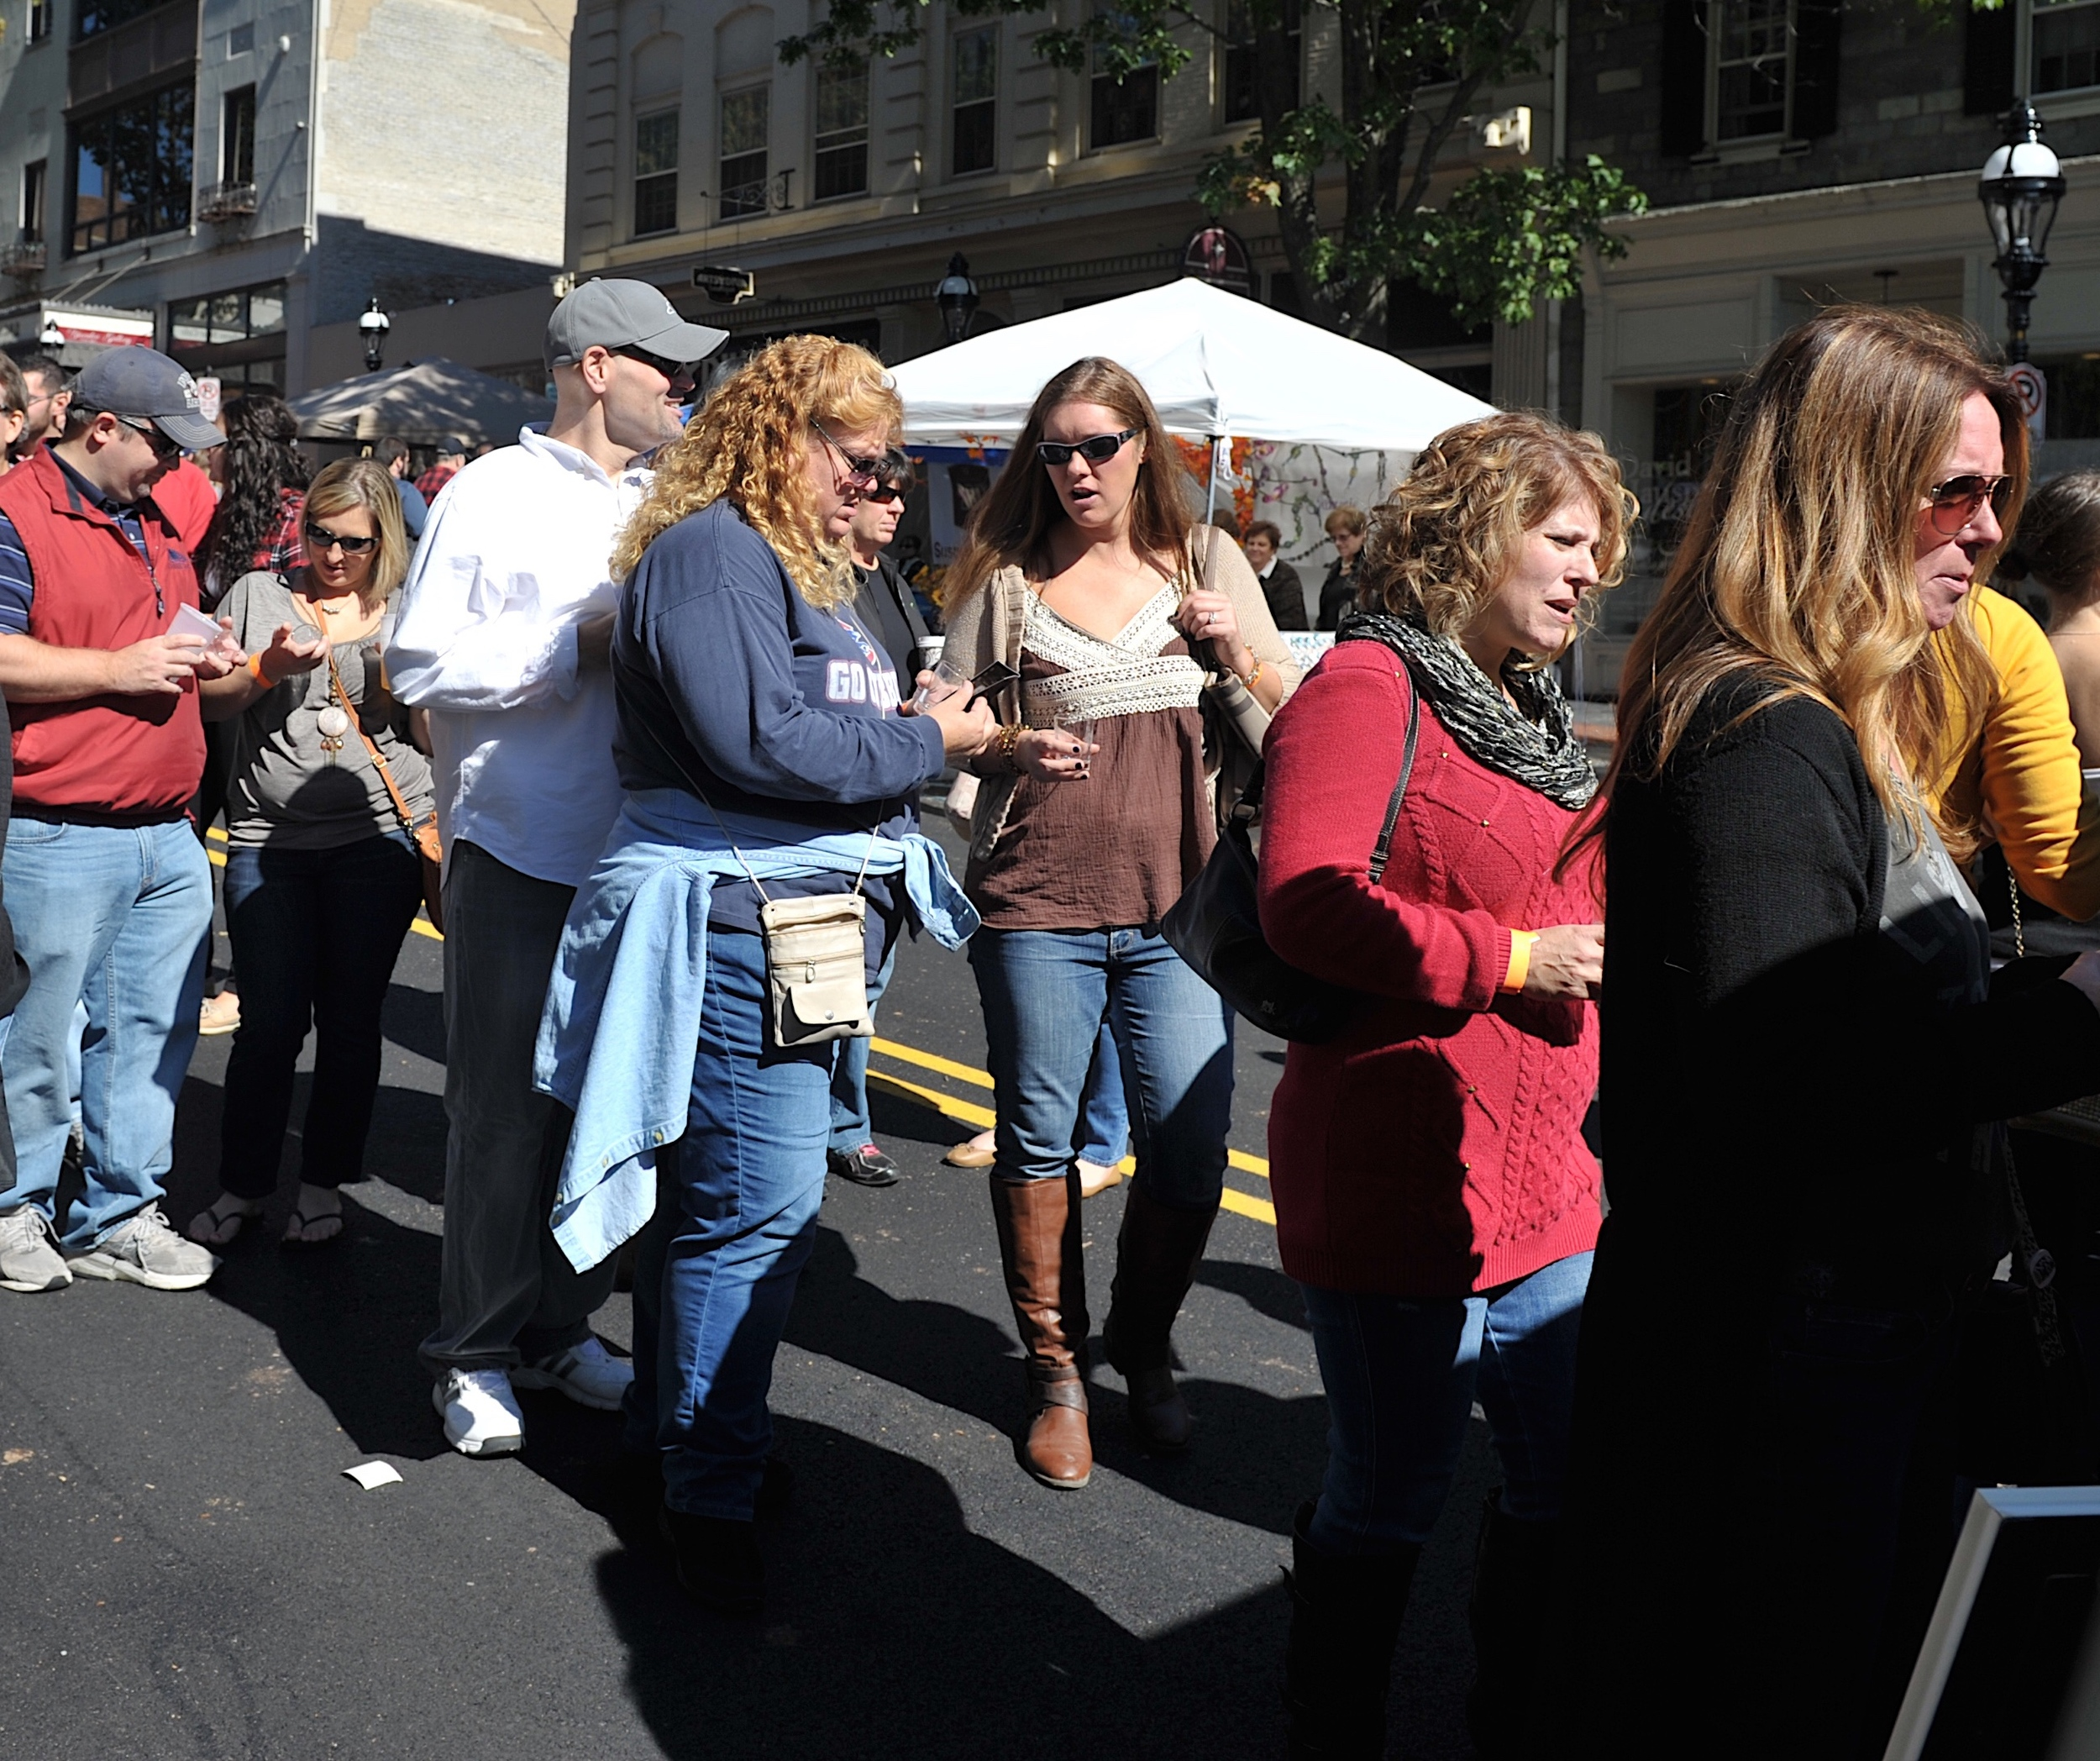 20 of 77;2015-10-10-Harvest Fest in Bethlehem, PA.jpg